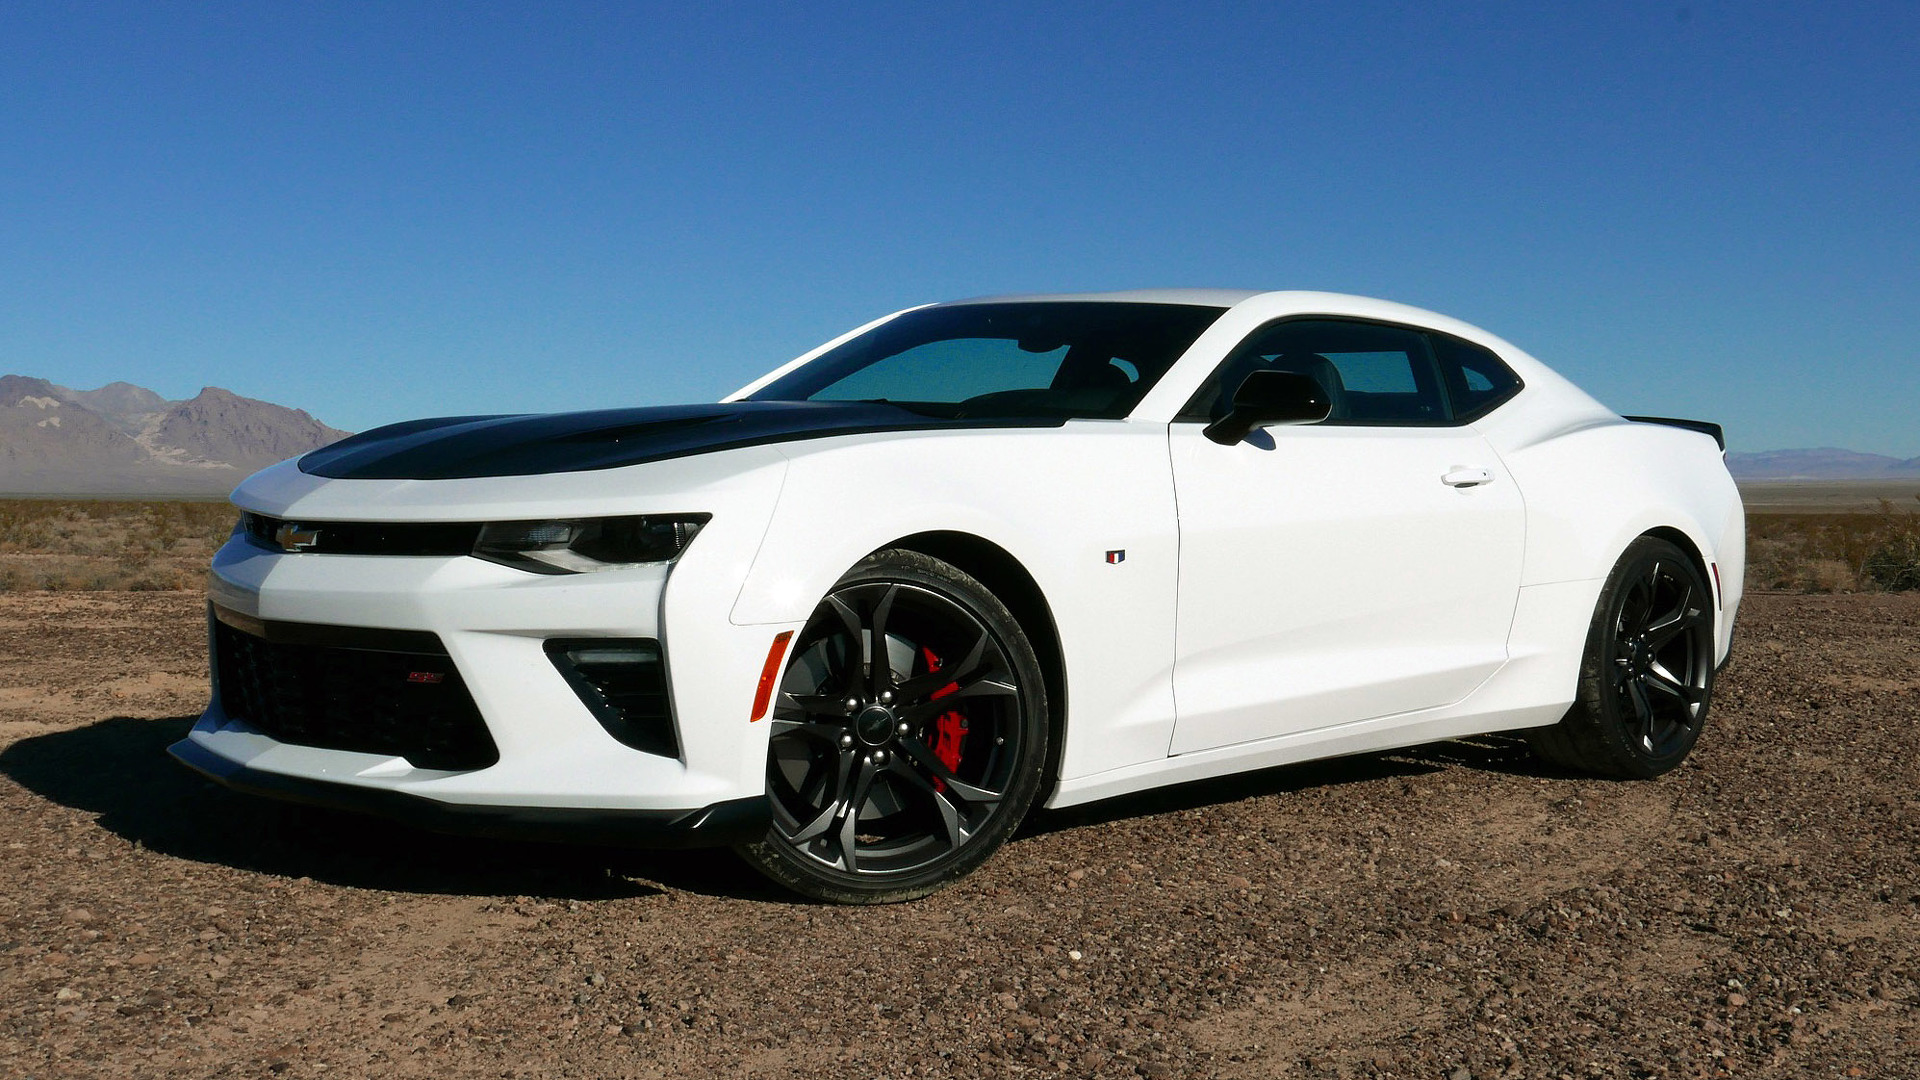 2017 chevy camaro 1le first drive set lap records on a budget rh motor1 com Power Wheels Mercedes Volvo Power Wheels